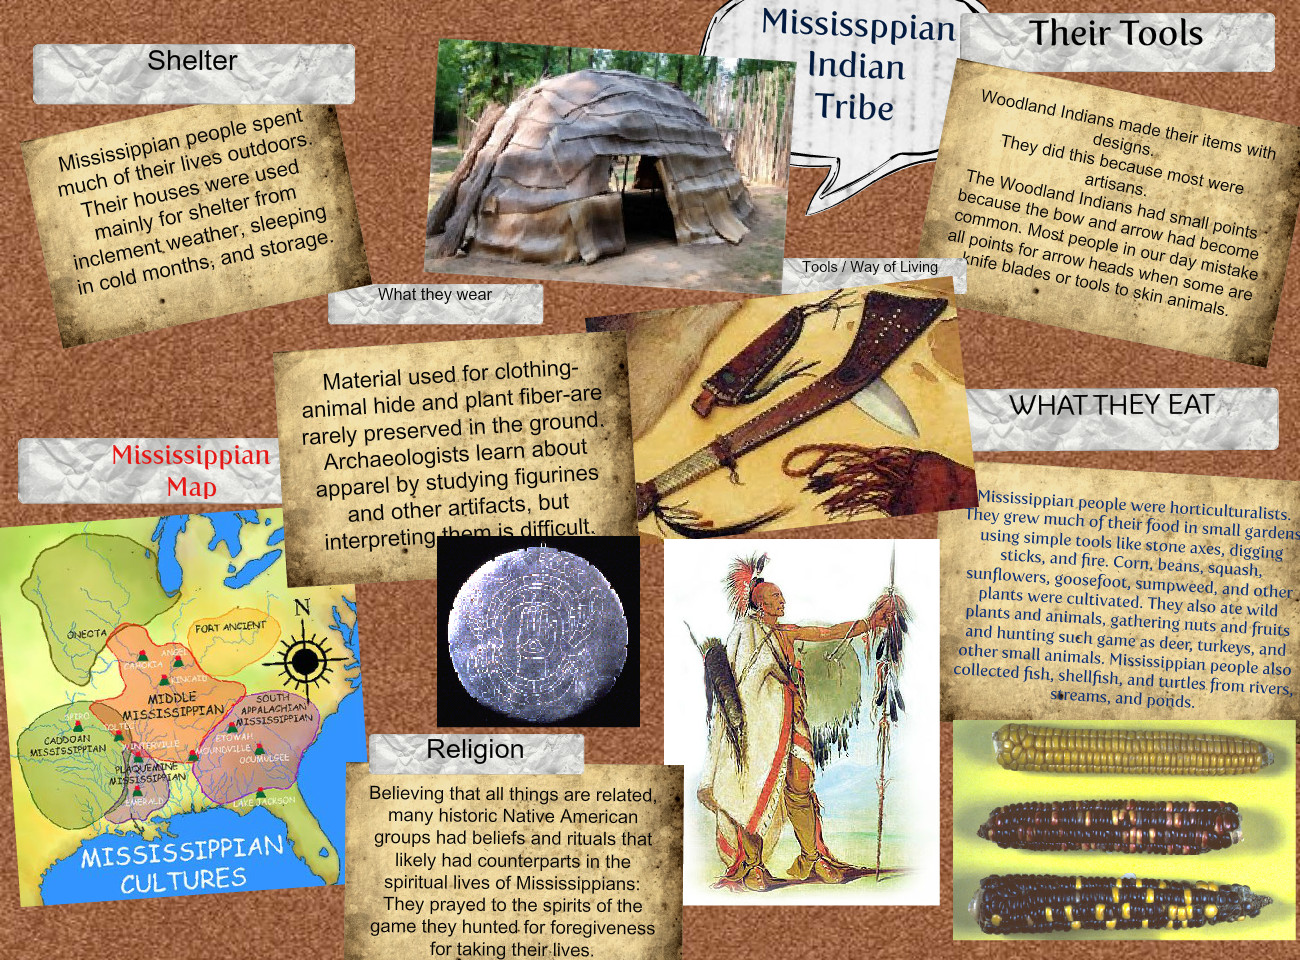 Mississippian Indian Tribe